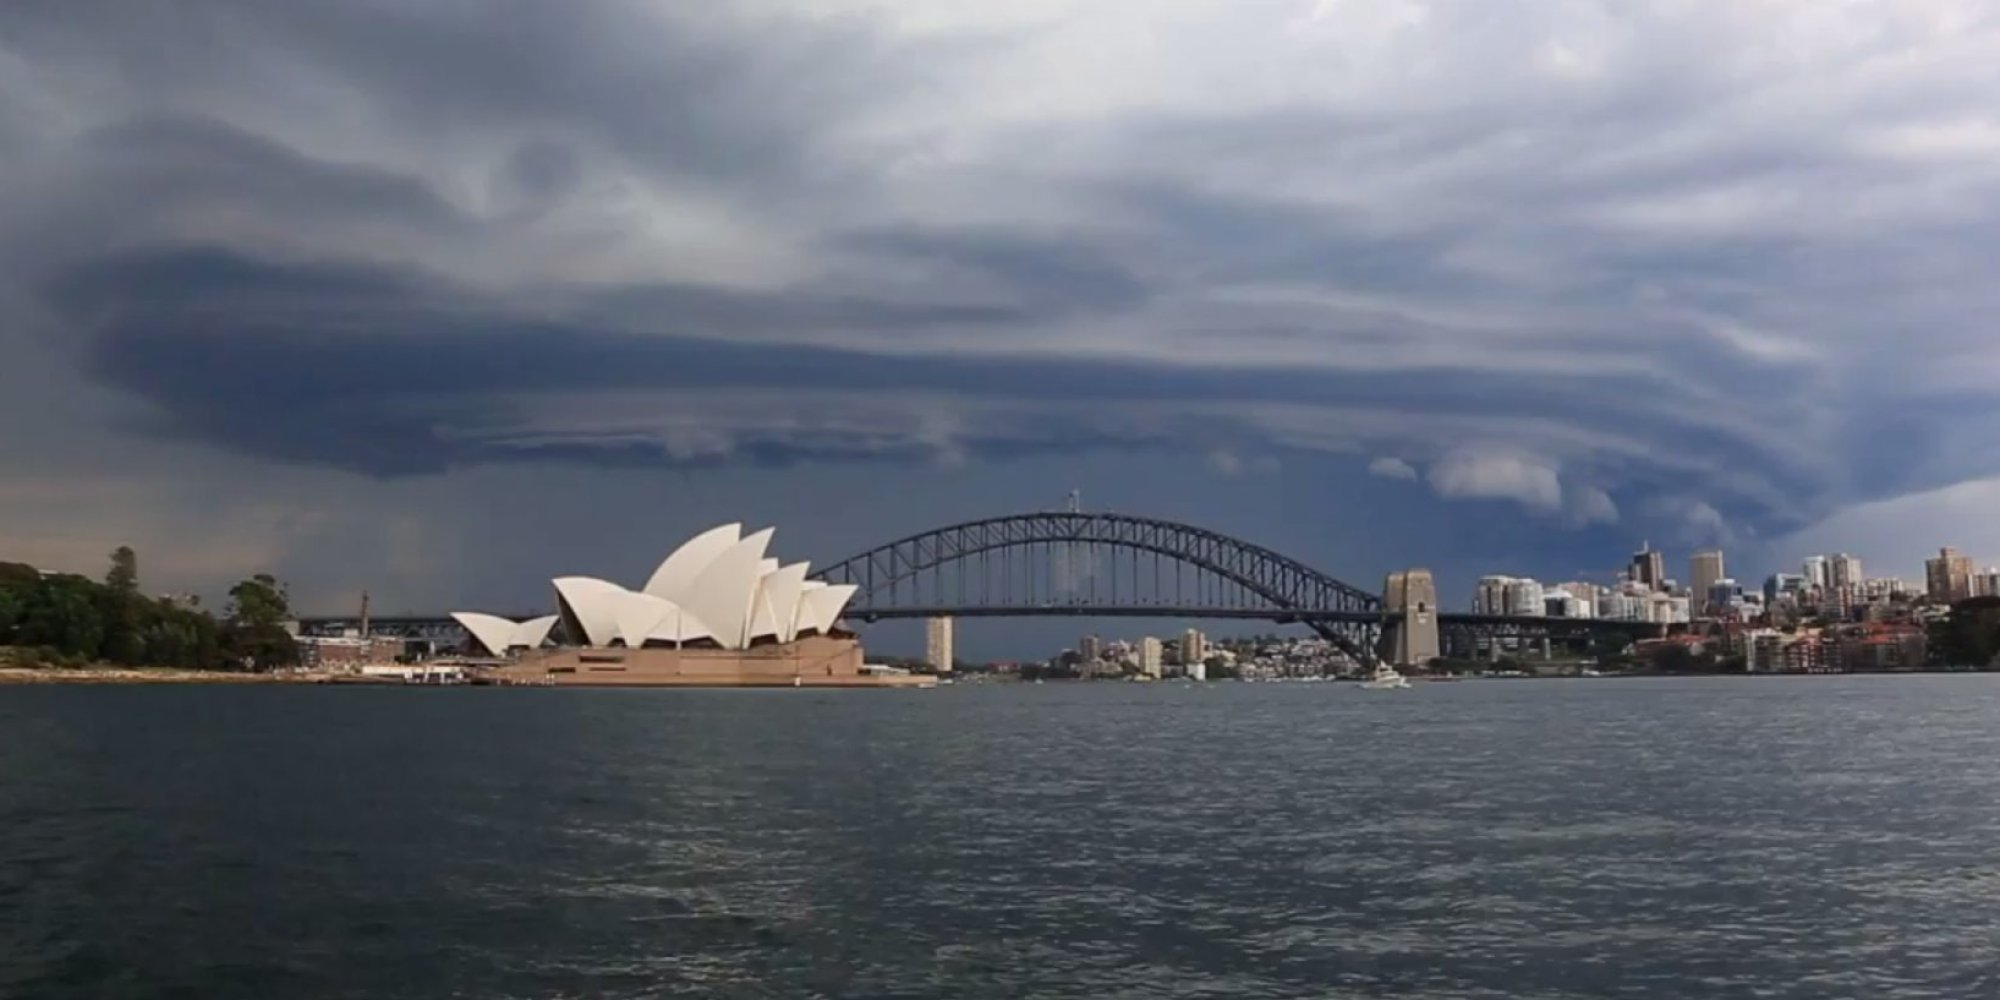 thunderstorms in sydney australia - photo#33